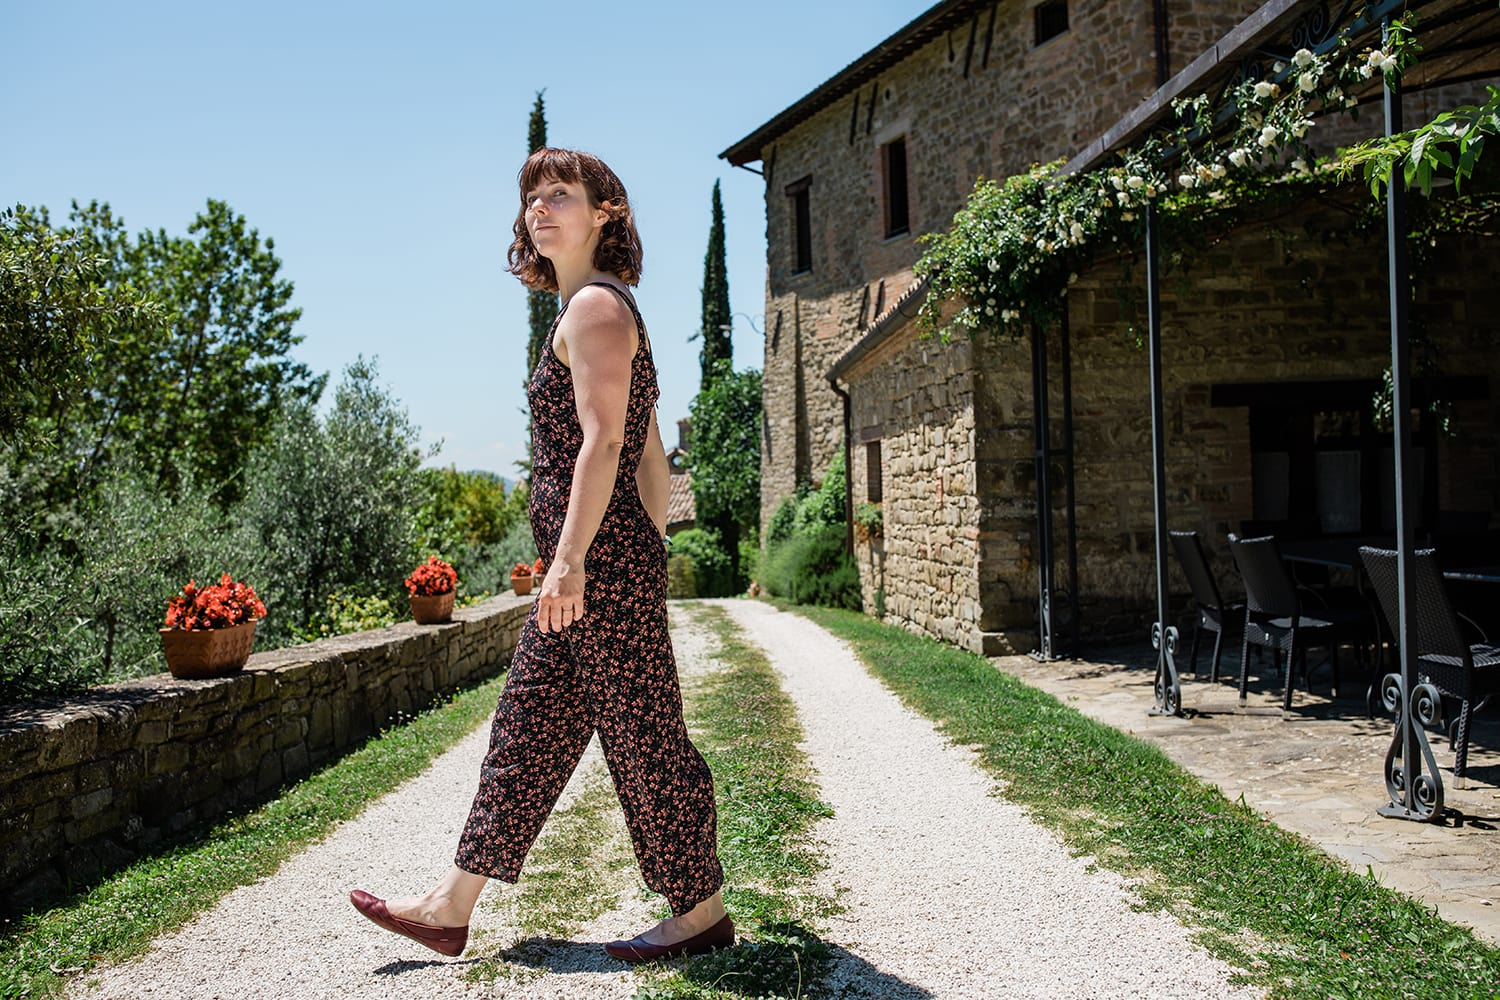 Merrell Ember shoes in Tuscany Italy